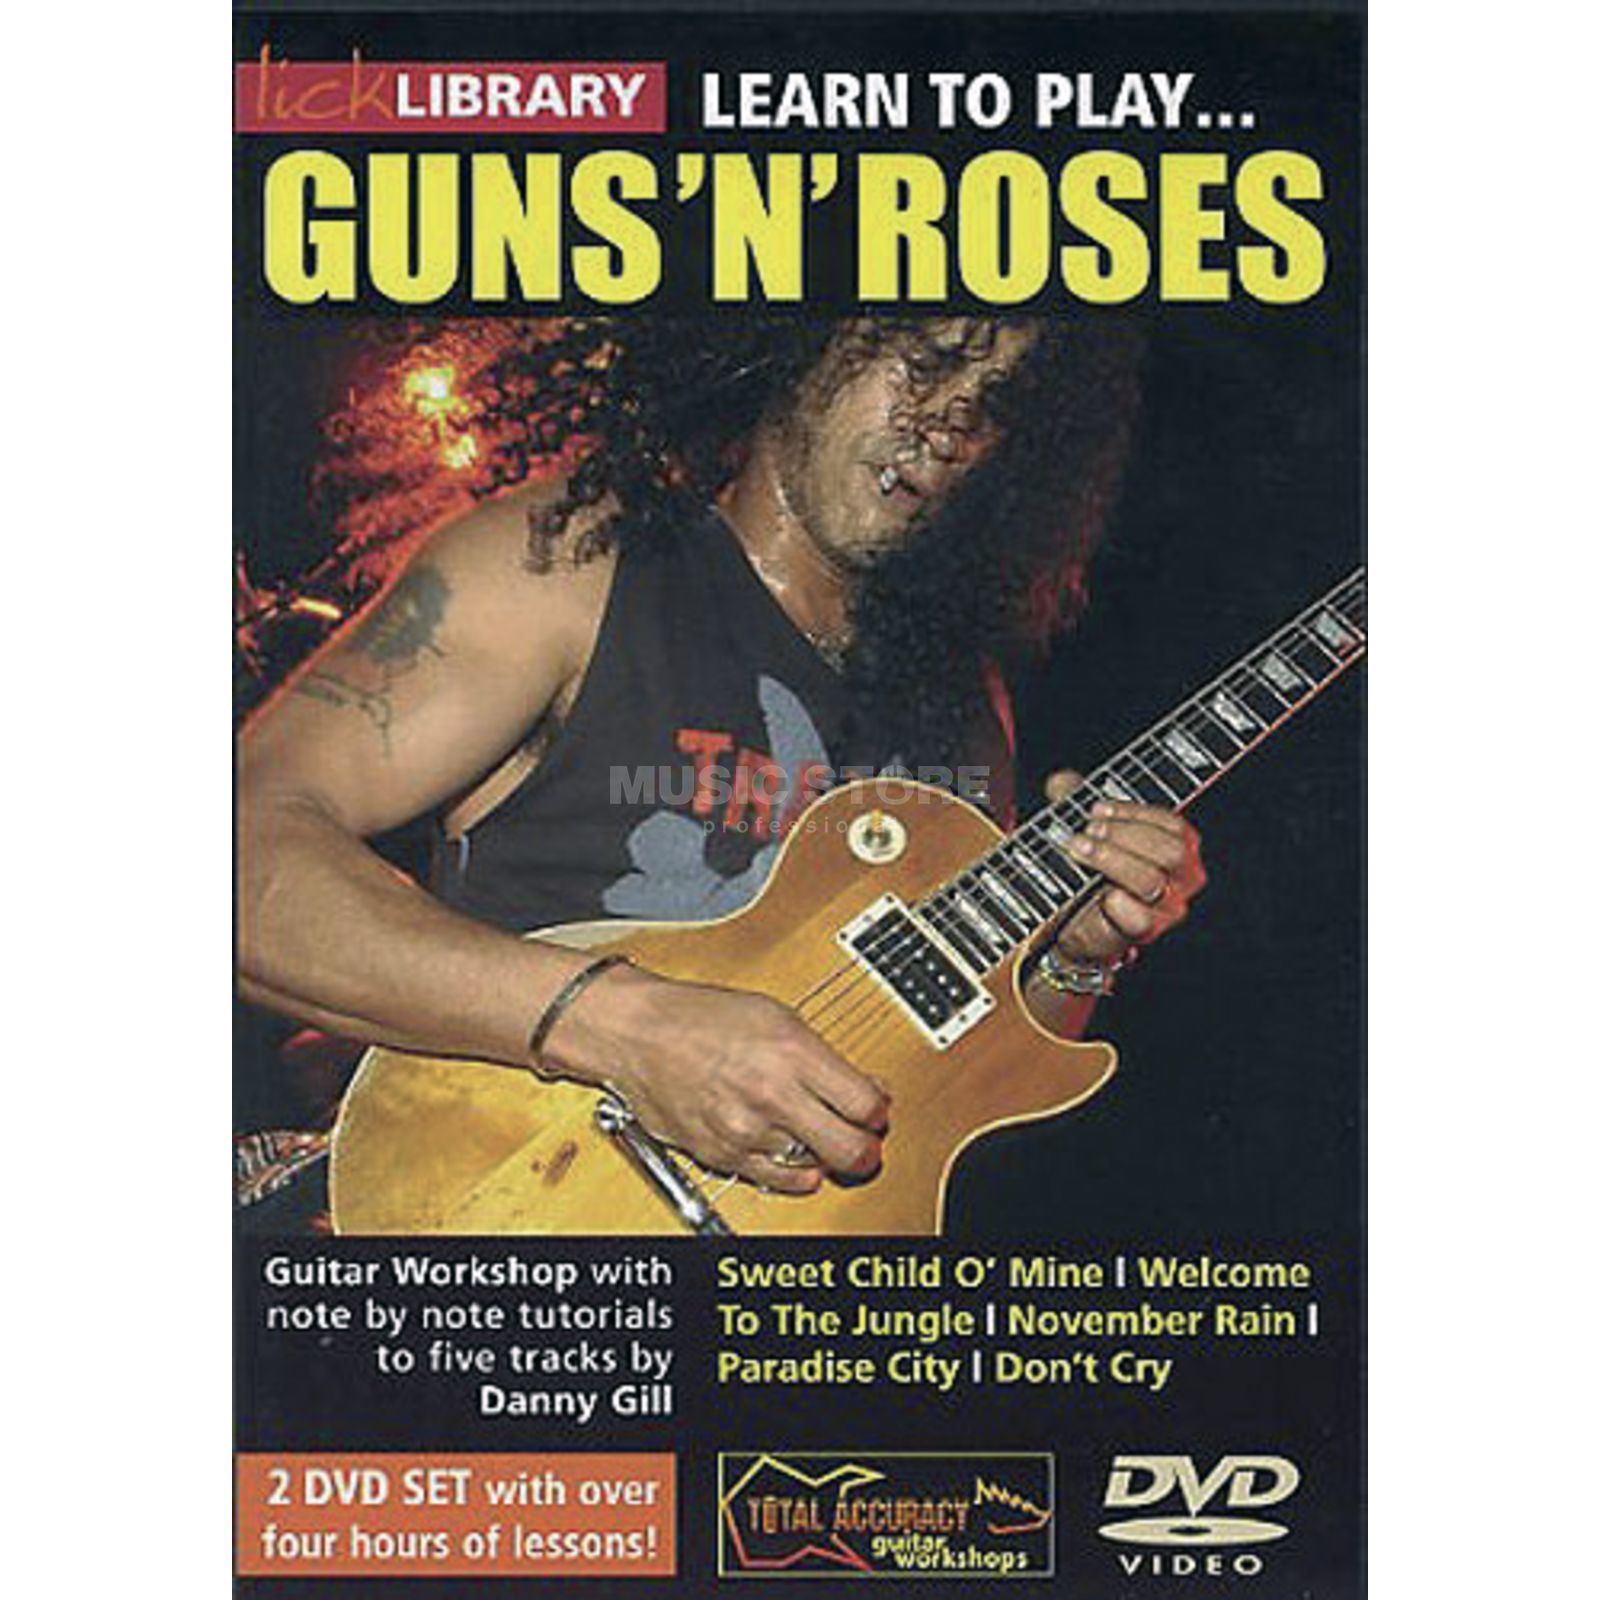 Roadrock International  Lick Library: Learn To Play Guns 'N' Roses Produktbild